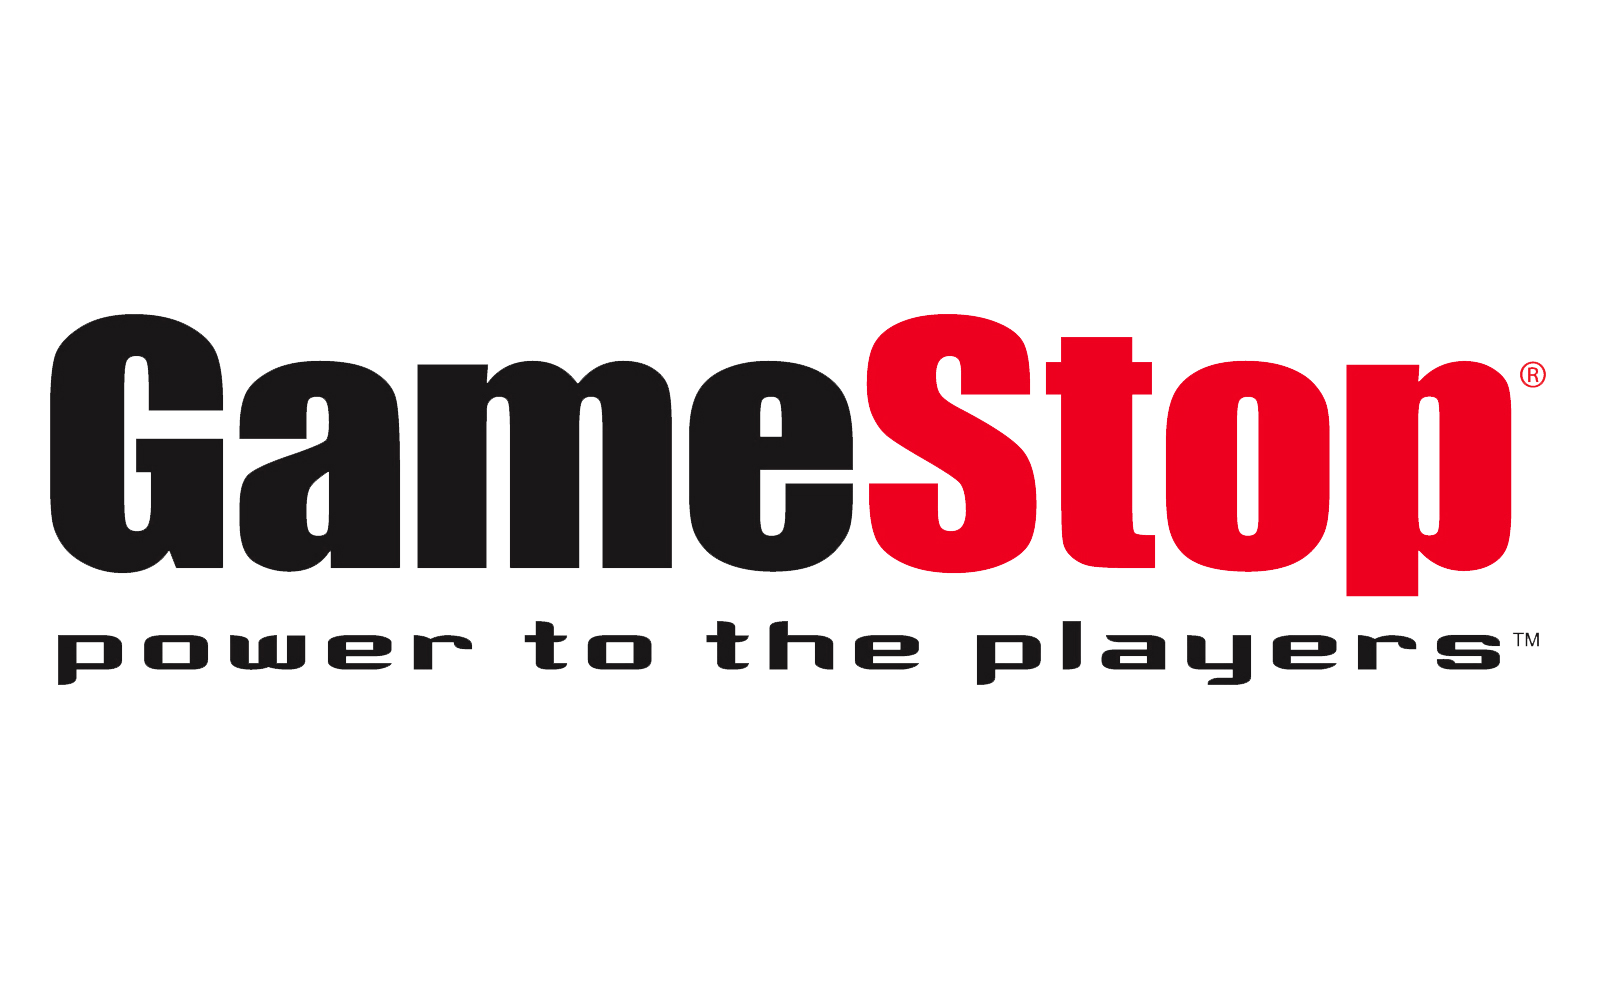 No Midnight Launch For Wii U At GameStop? – My Nintendo News